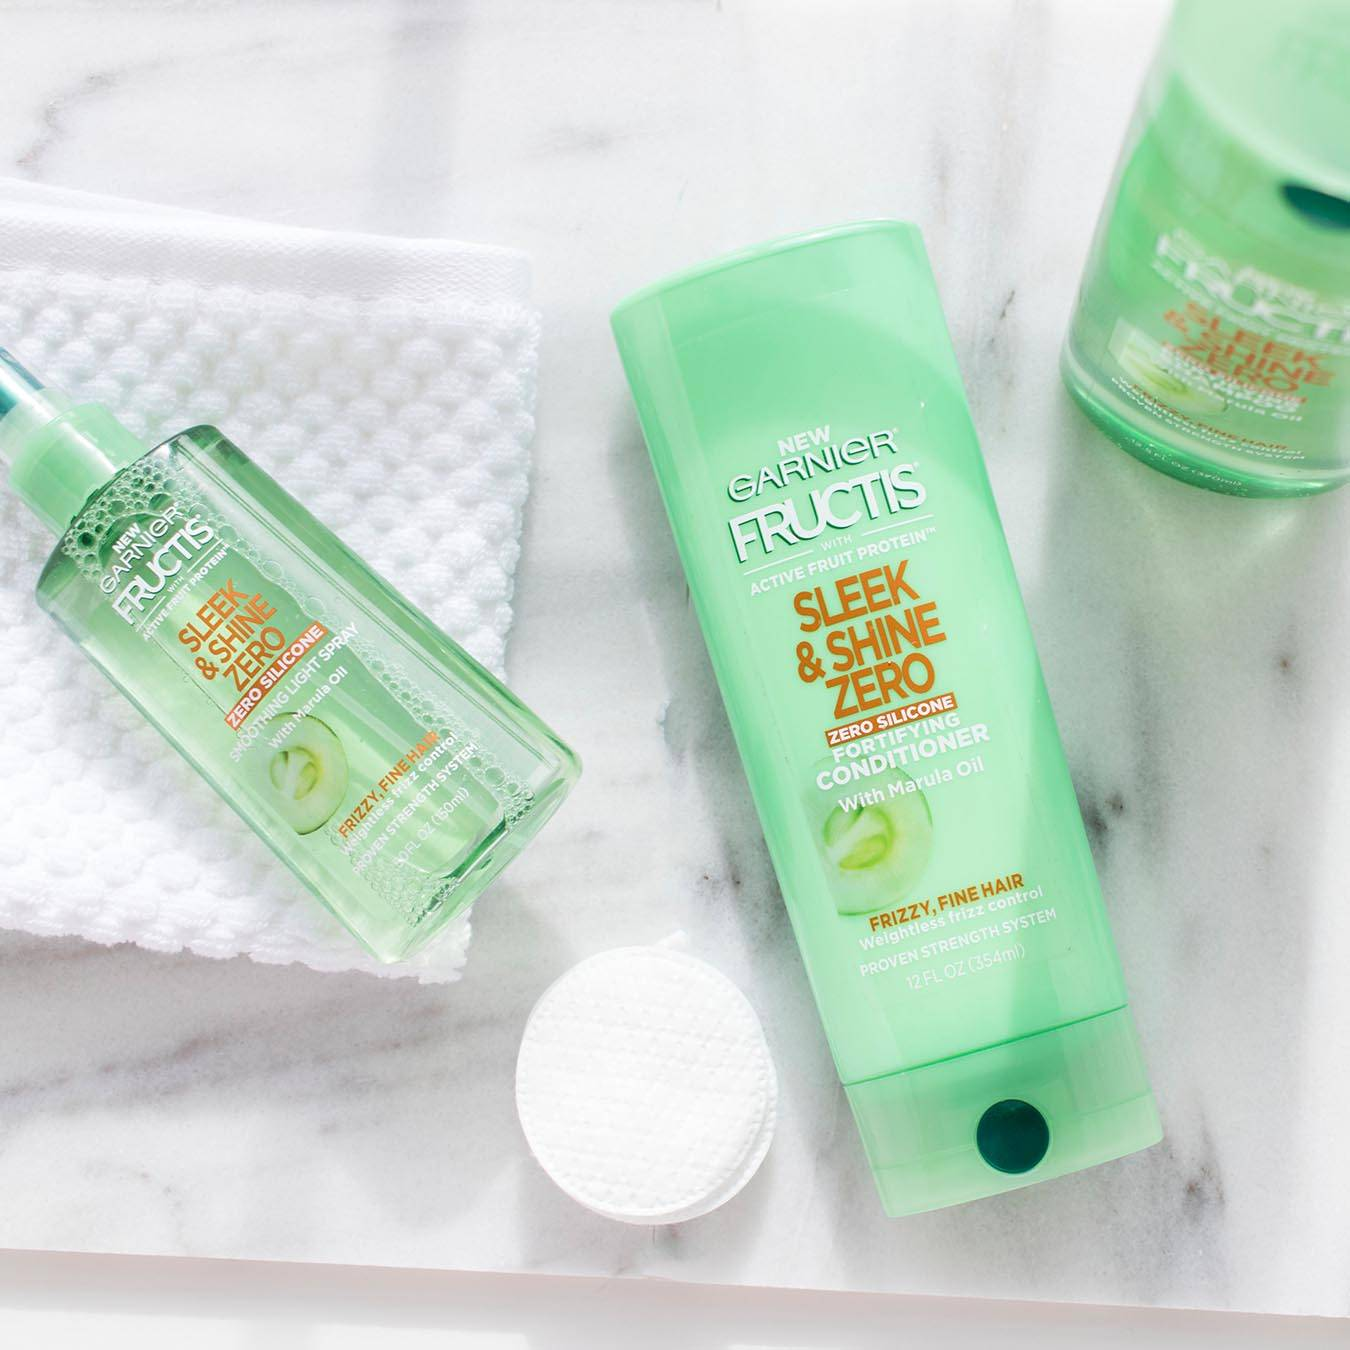 Garnier Fructis Sleek & Shine Zero Shampoo and Fructis Sleek & Shine Zero Conditioner on white marble and Fructis Sleek & Shine Smoothing Light Spray on a white wash cloth next to makeup removal pads.